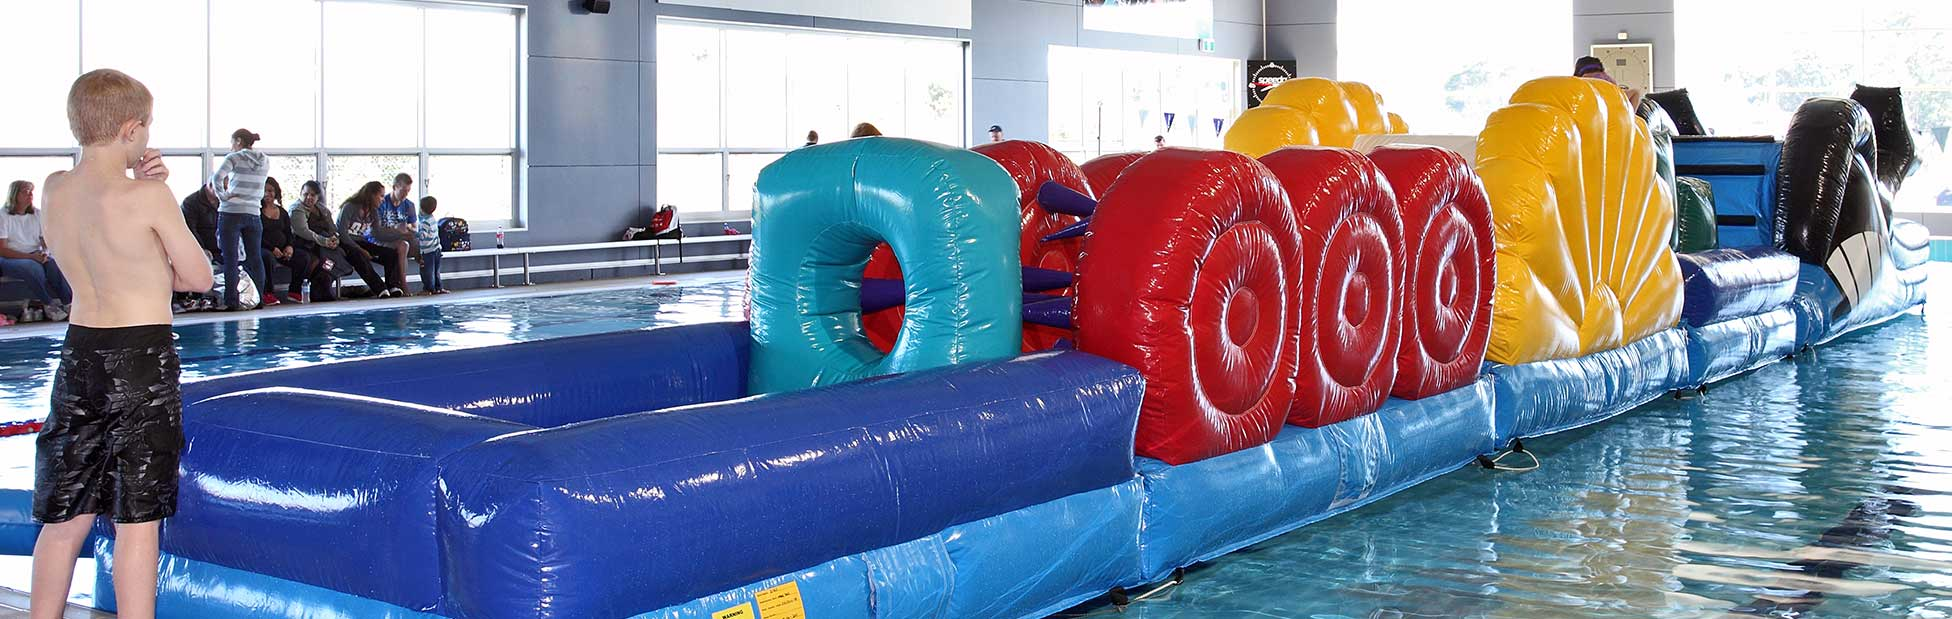 dd704d4bf1 Image of inflatables in a pool. Home · Events · Family  School Holiday Fun  Day at Nepean Aquatic Centre